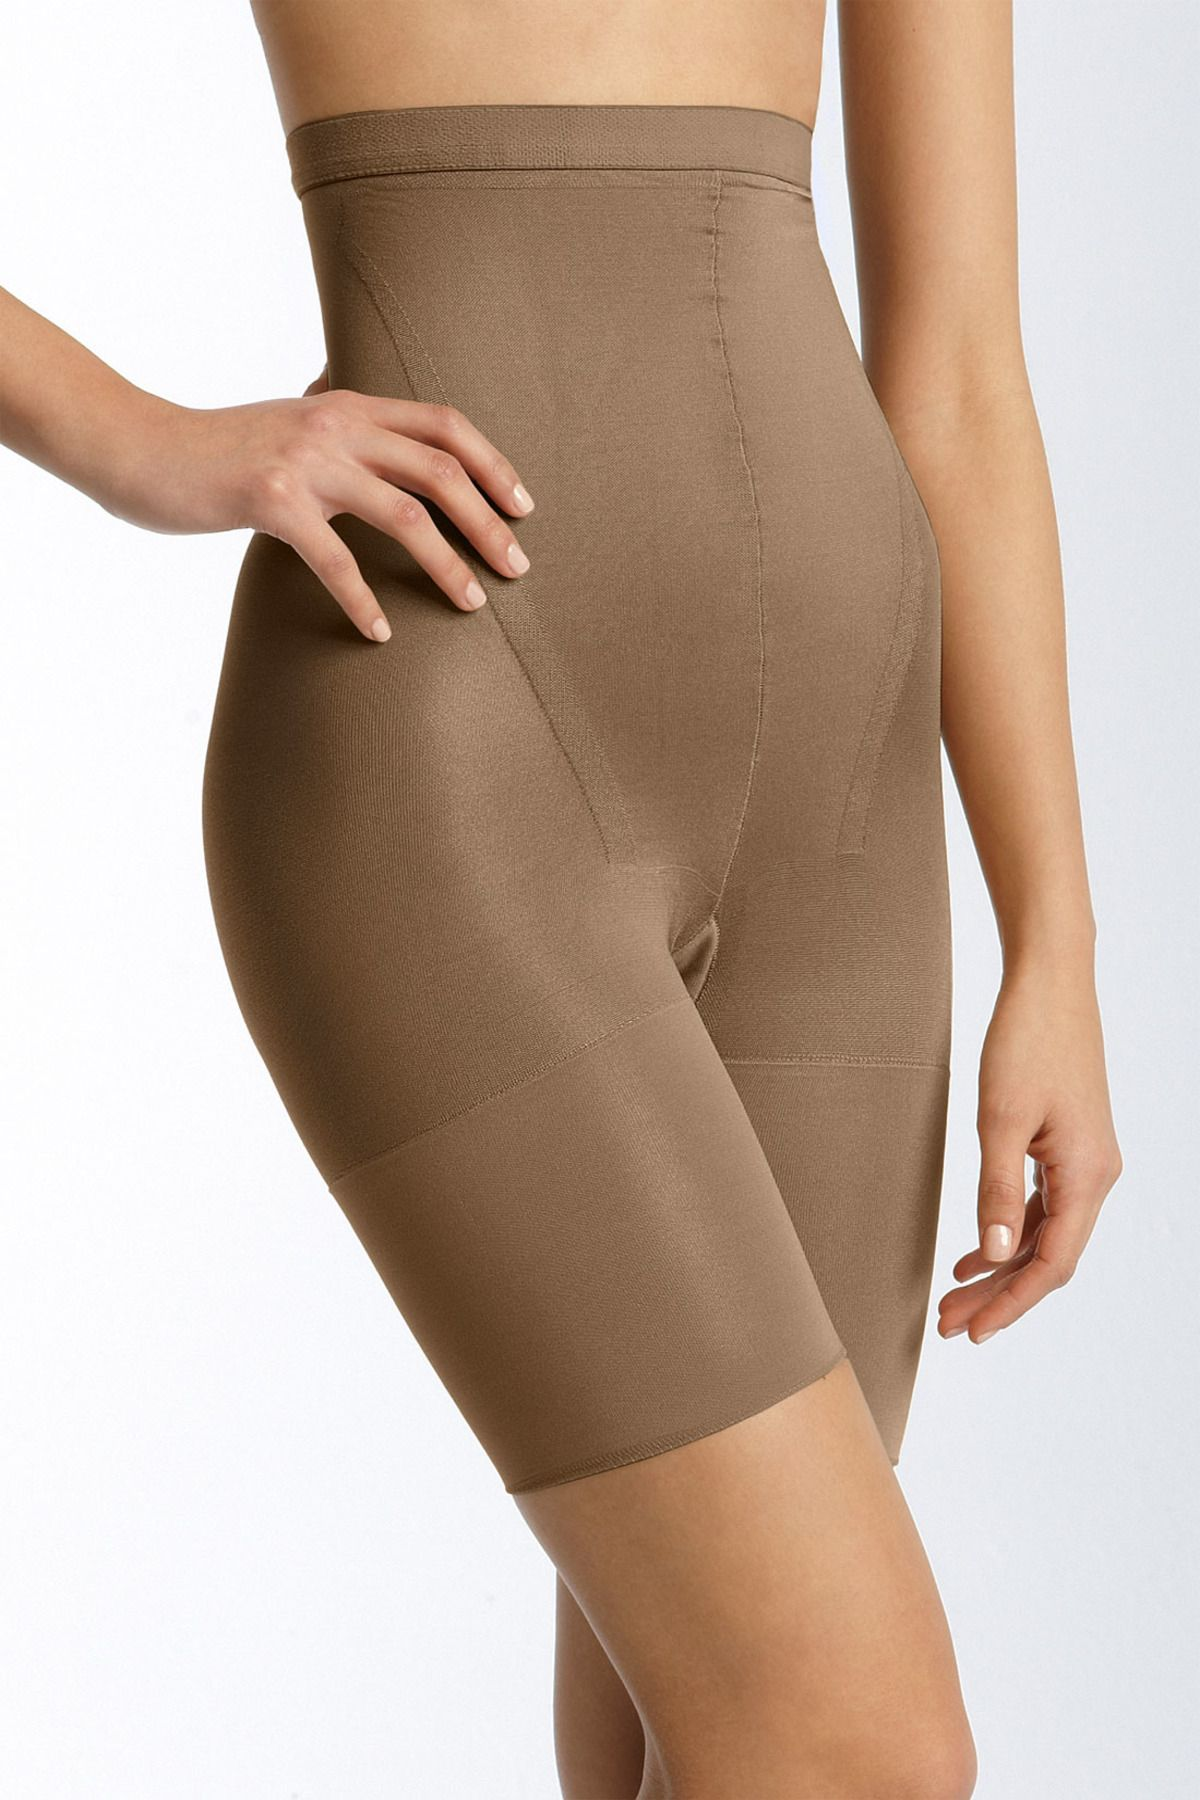 518fd4be2ba3d Spanx Super Higher Power Tummy Control Shaper (Plus Size Available ...